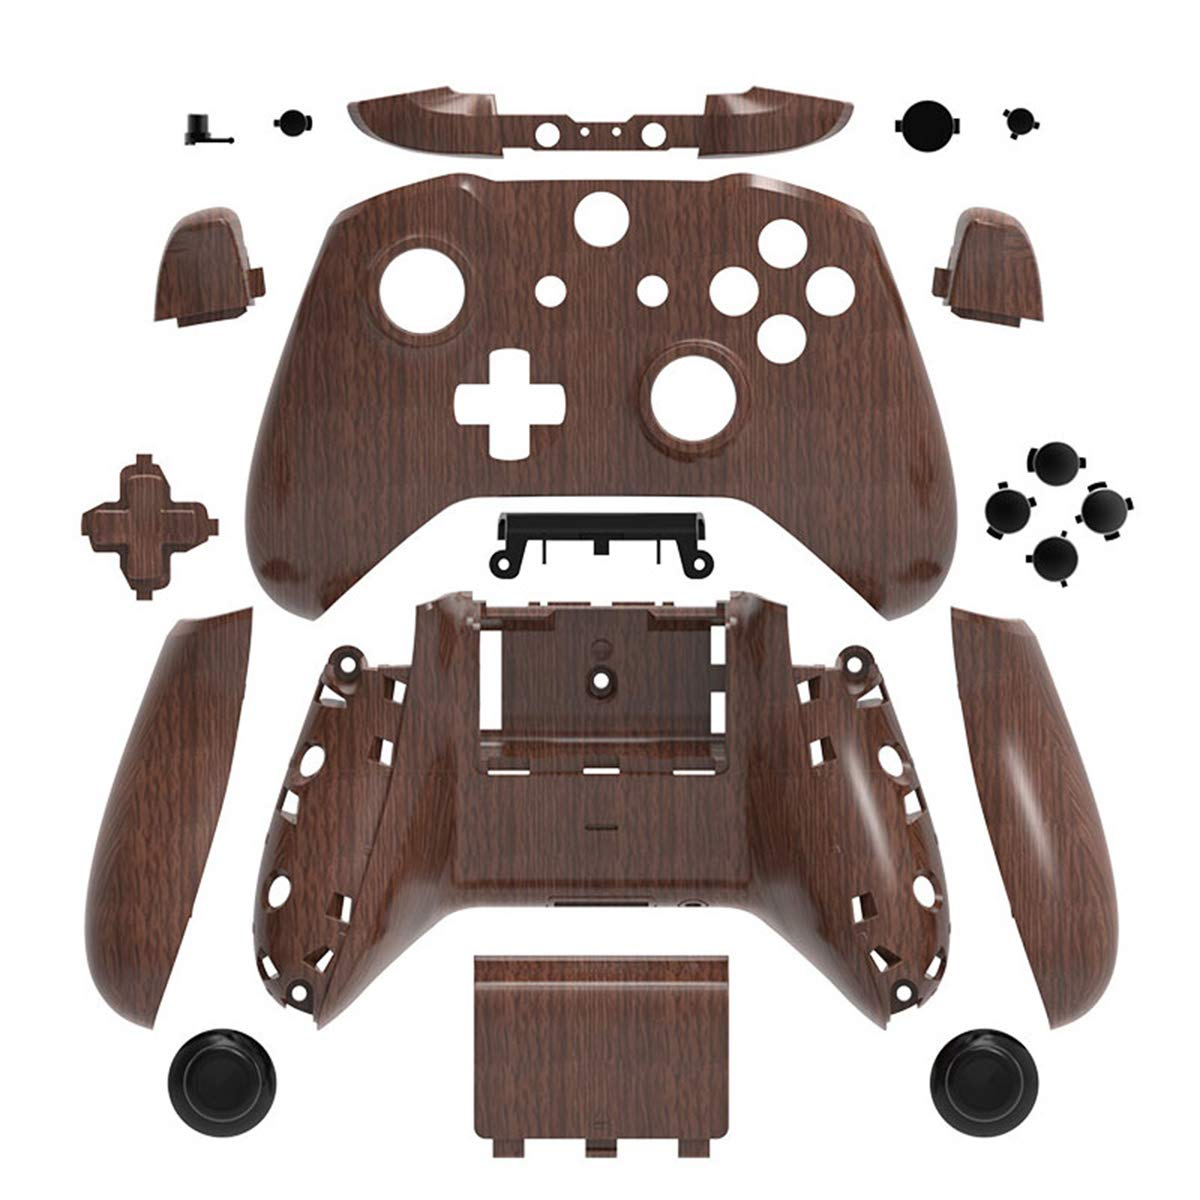 Wood Grain Hydro Dipped Full Housing Shell Case Cover Mod Kit Replacement for Xbox One S & Xbox One X Controller DIY Custom Including Front Faceplate Bottom Shell Buttons Tools Wooden Pattern